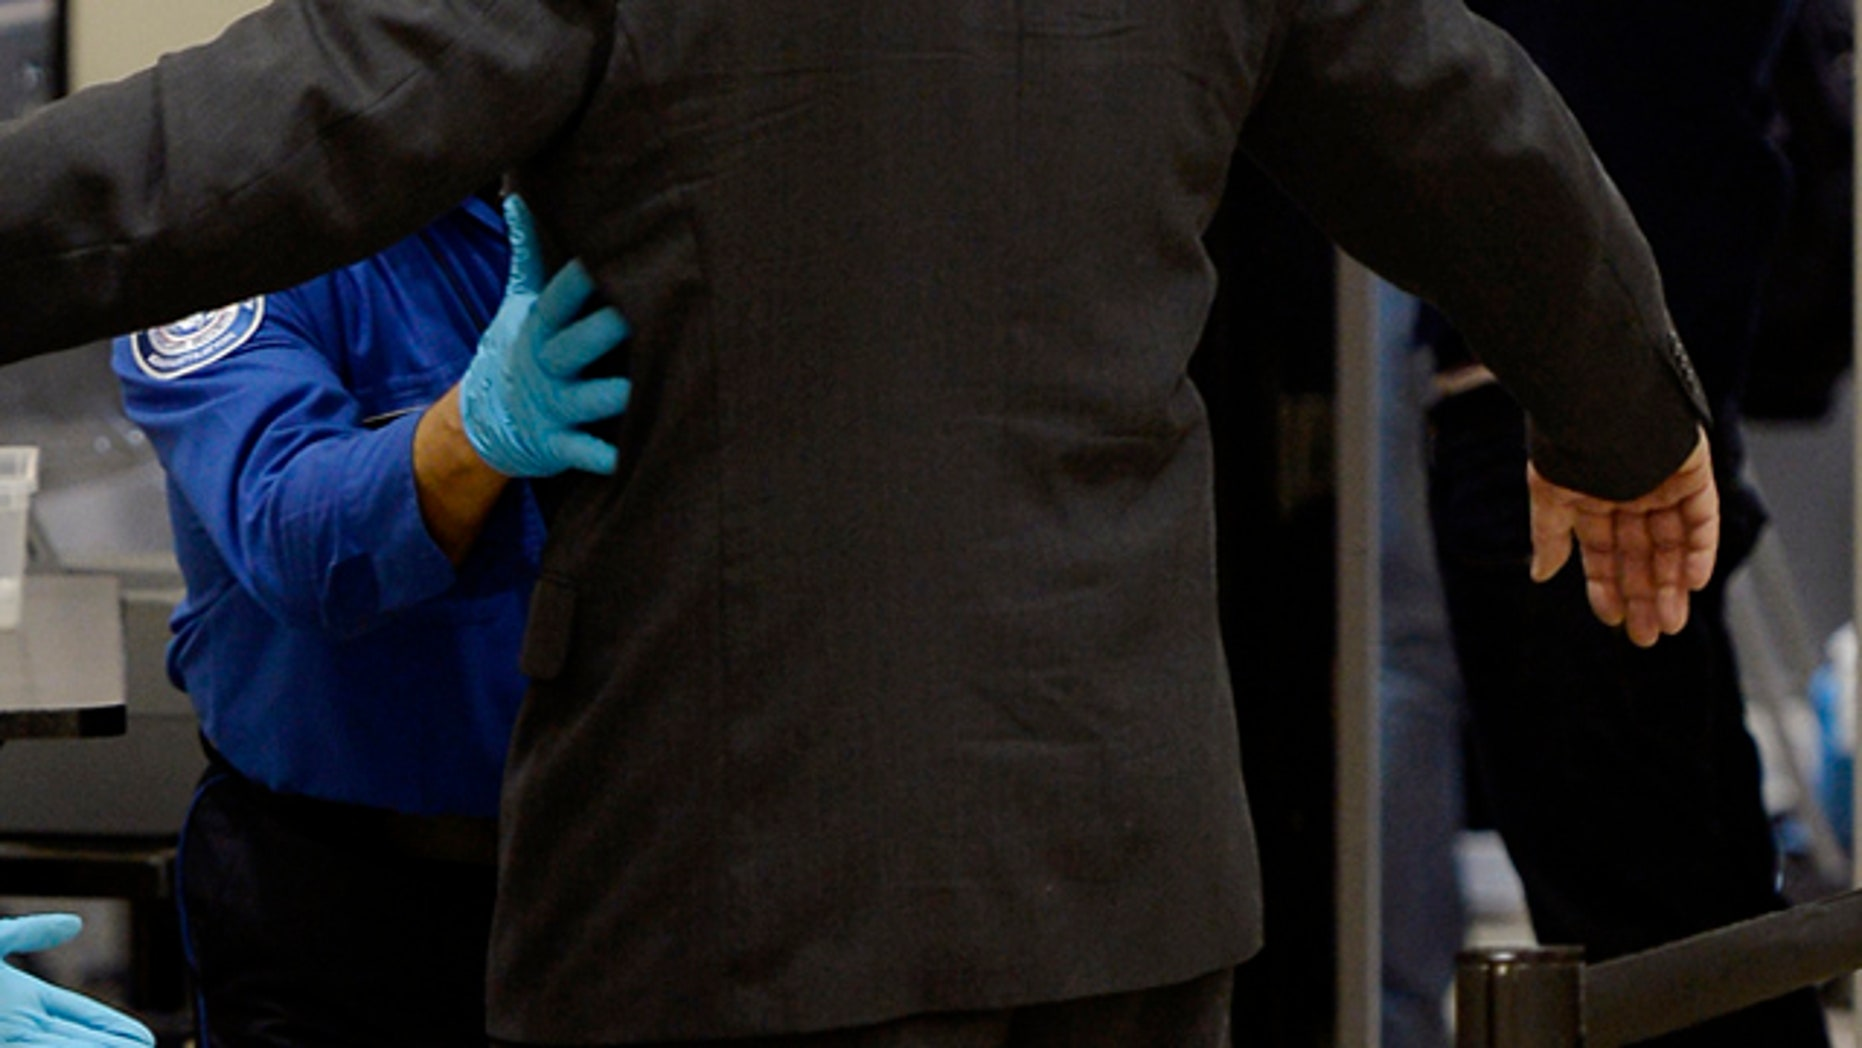 An airline passenger is patted down by a Transportation Security Administration agent after passing through a full-body scanner at Los Angeles International Airport.